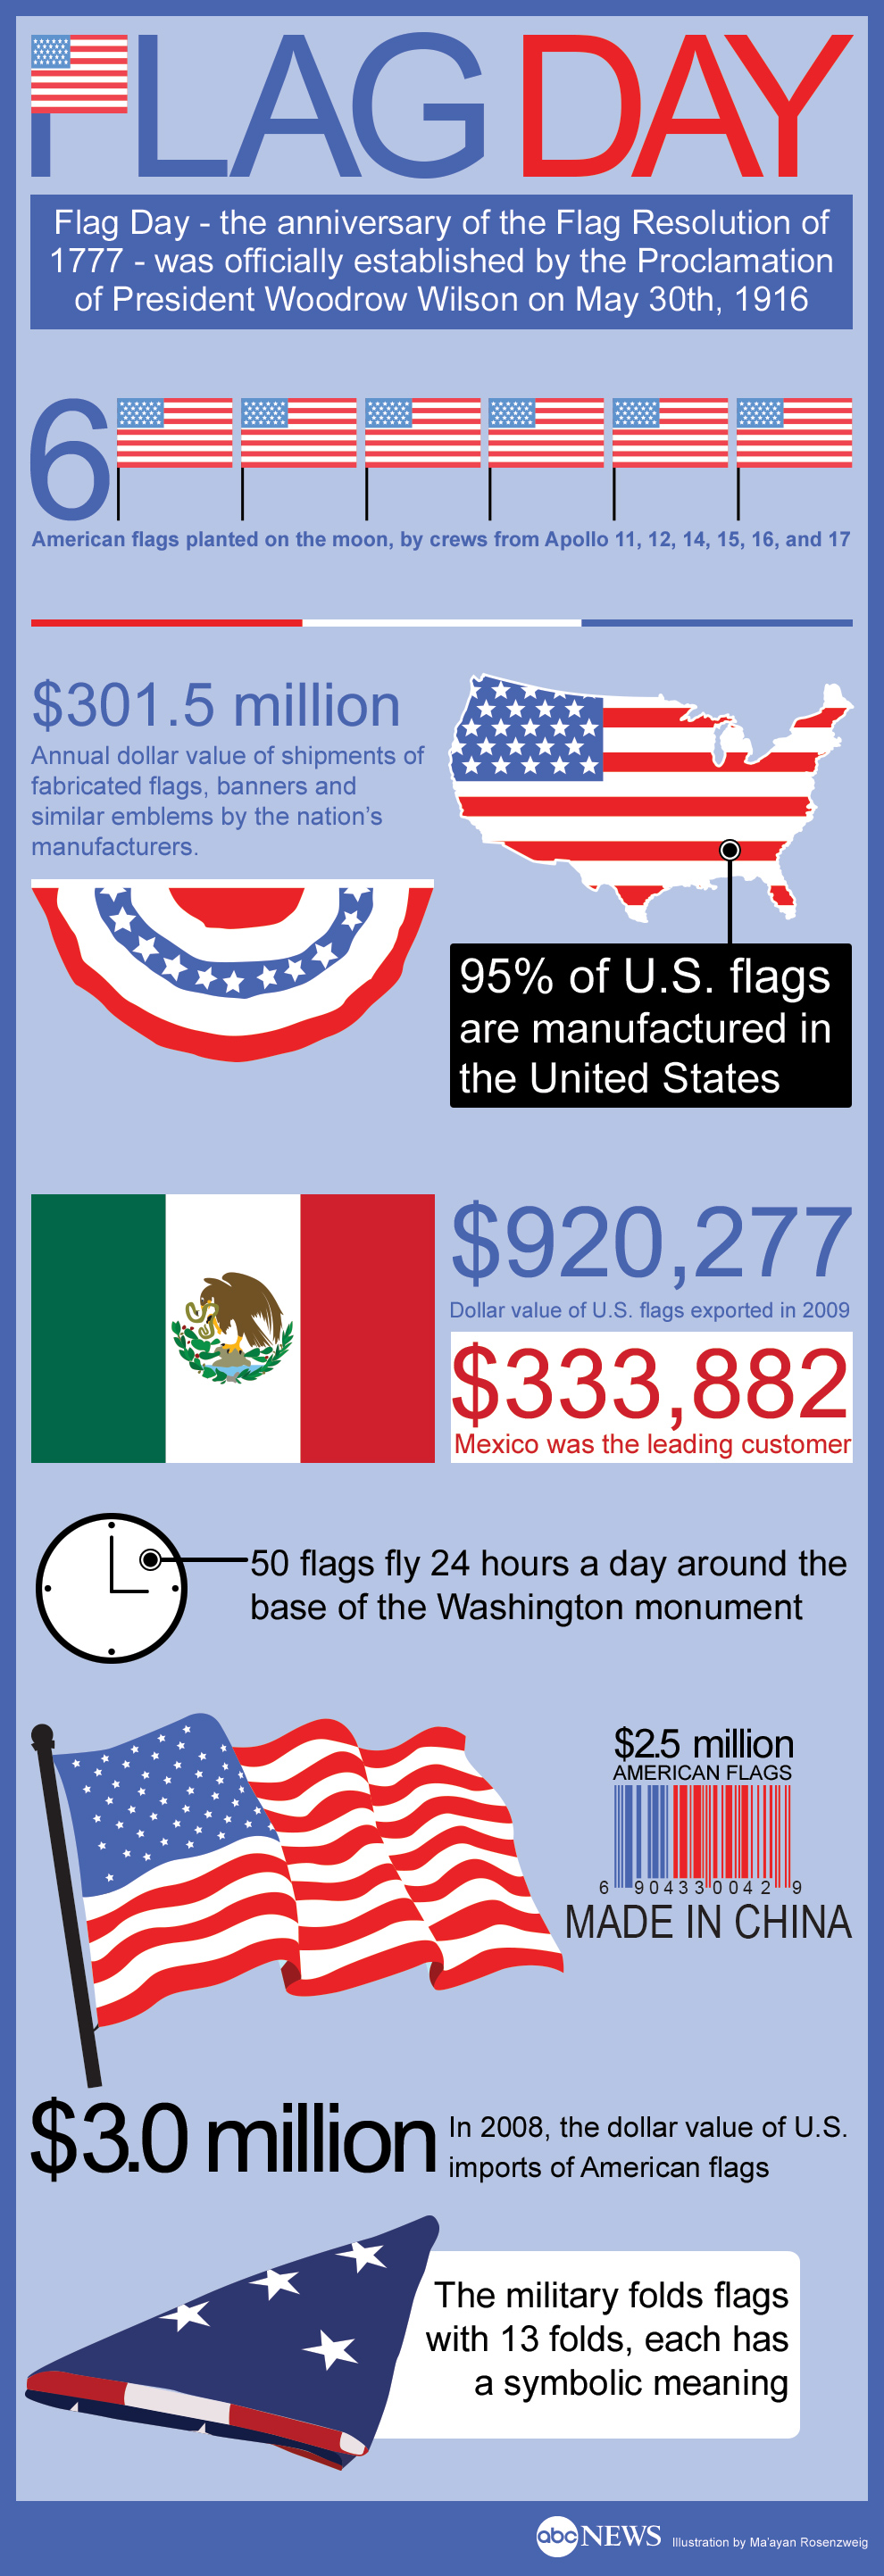 Flag day facts and figures about the american flag for The american flag history